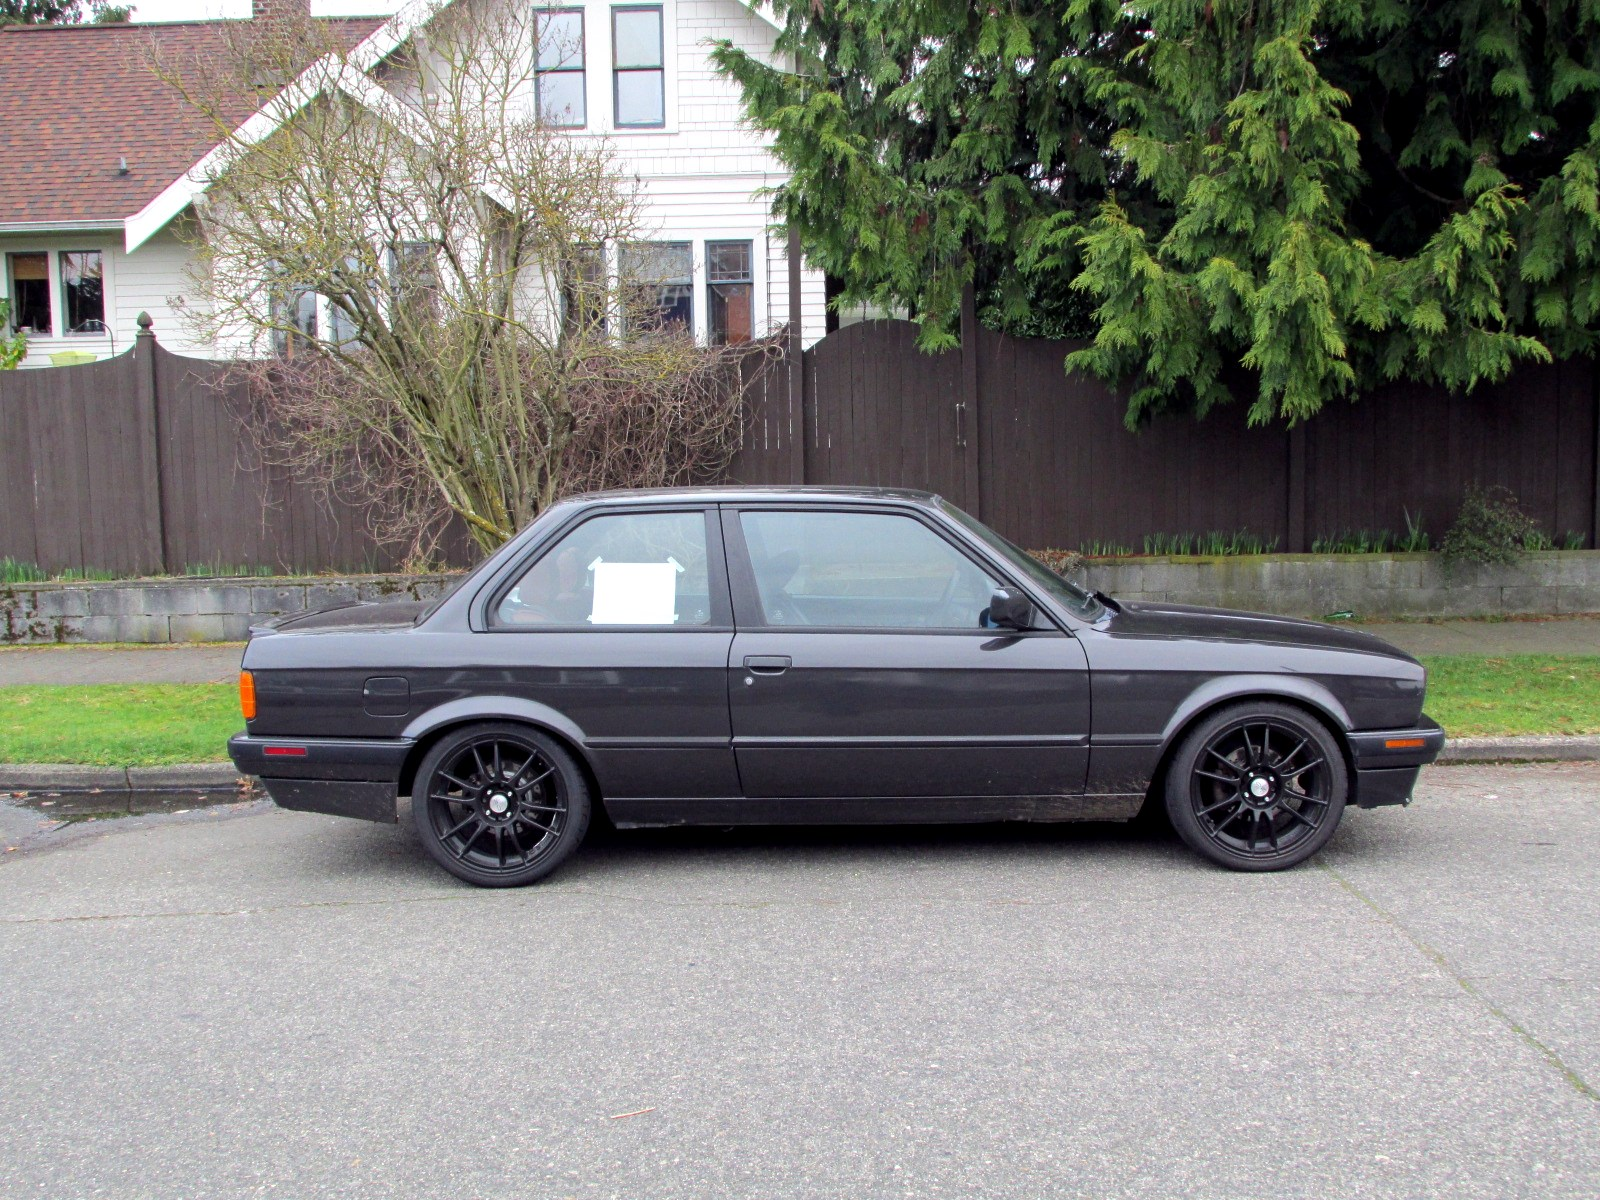 BMW 318iS 1991 photo - 4